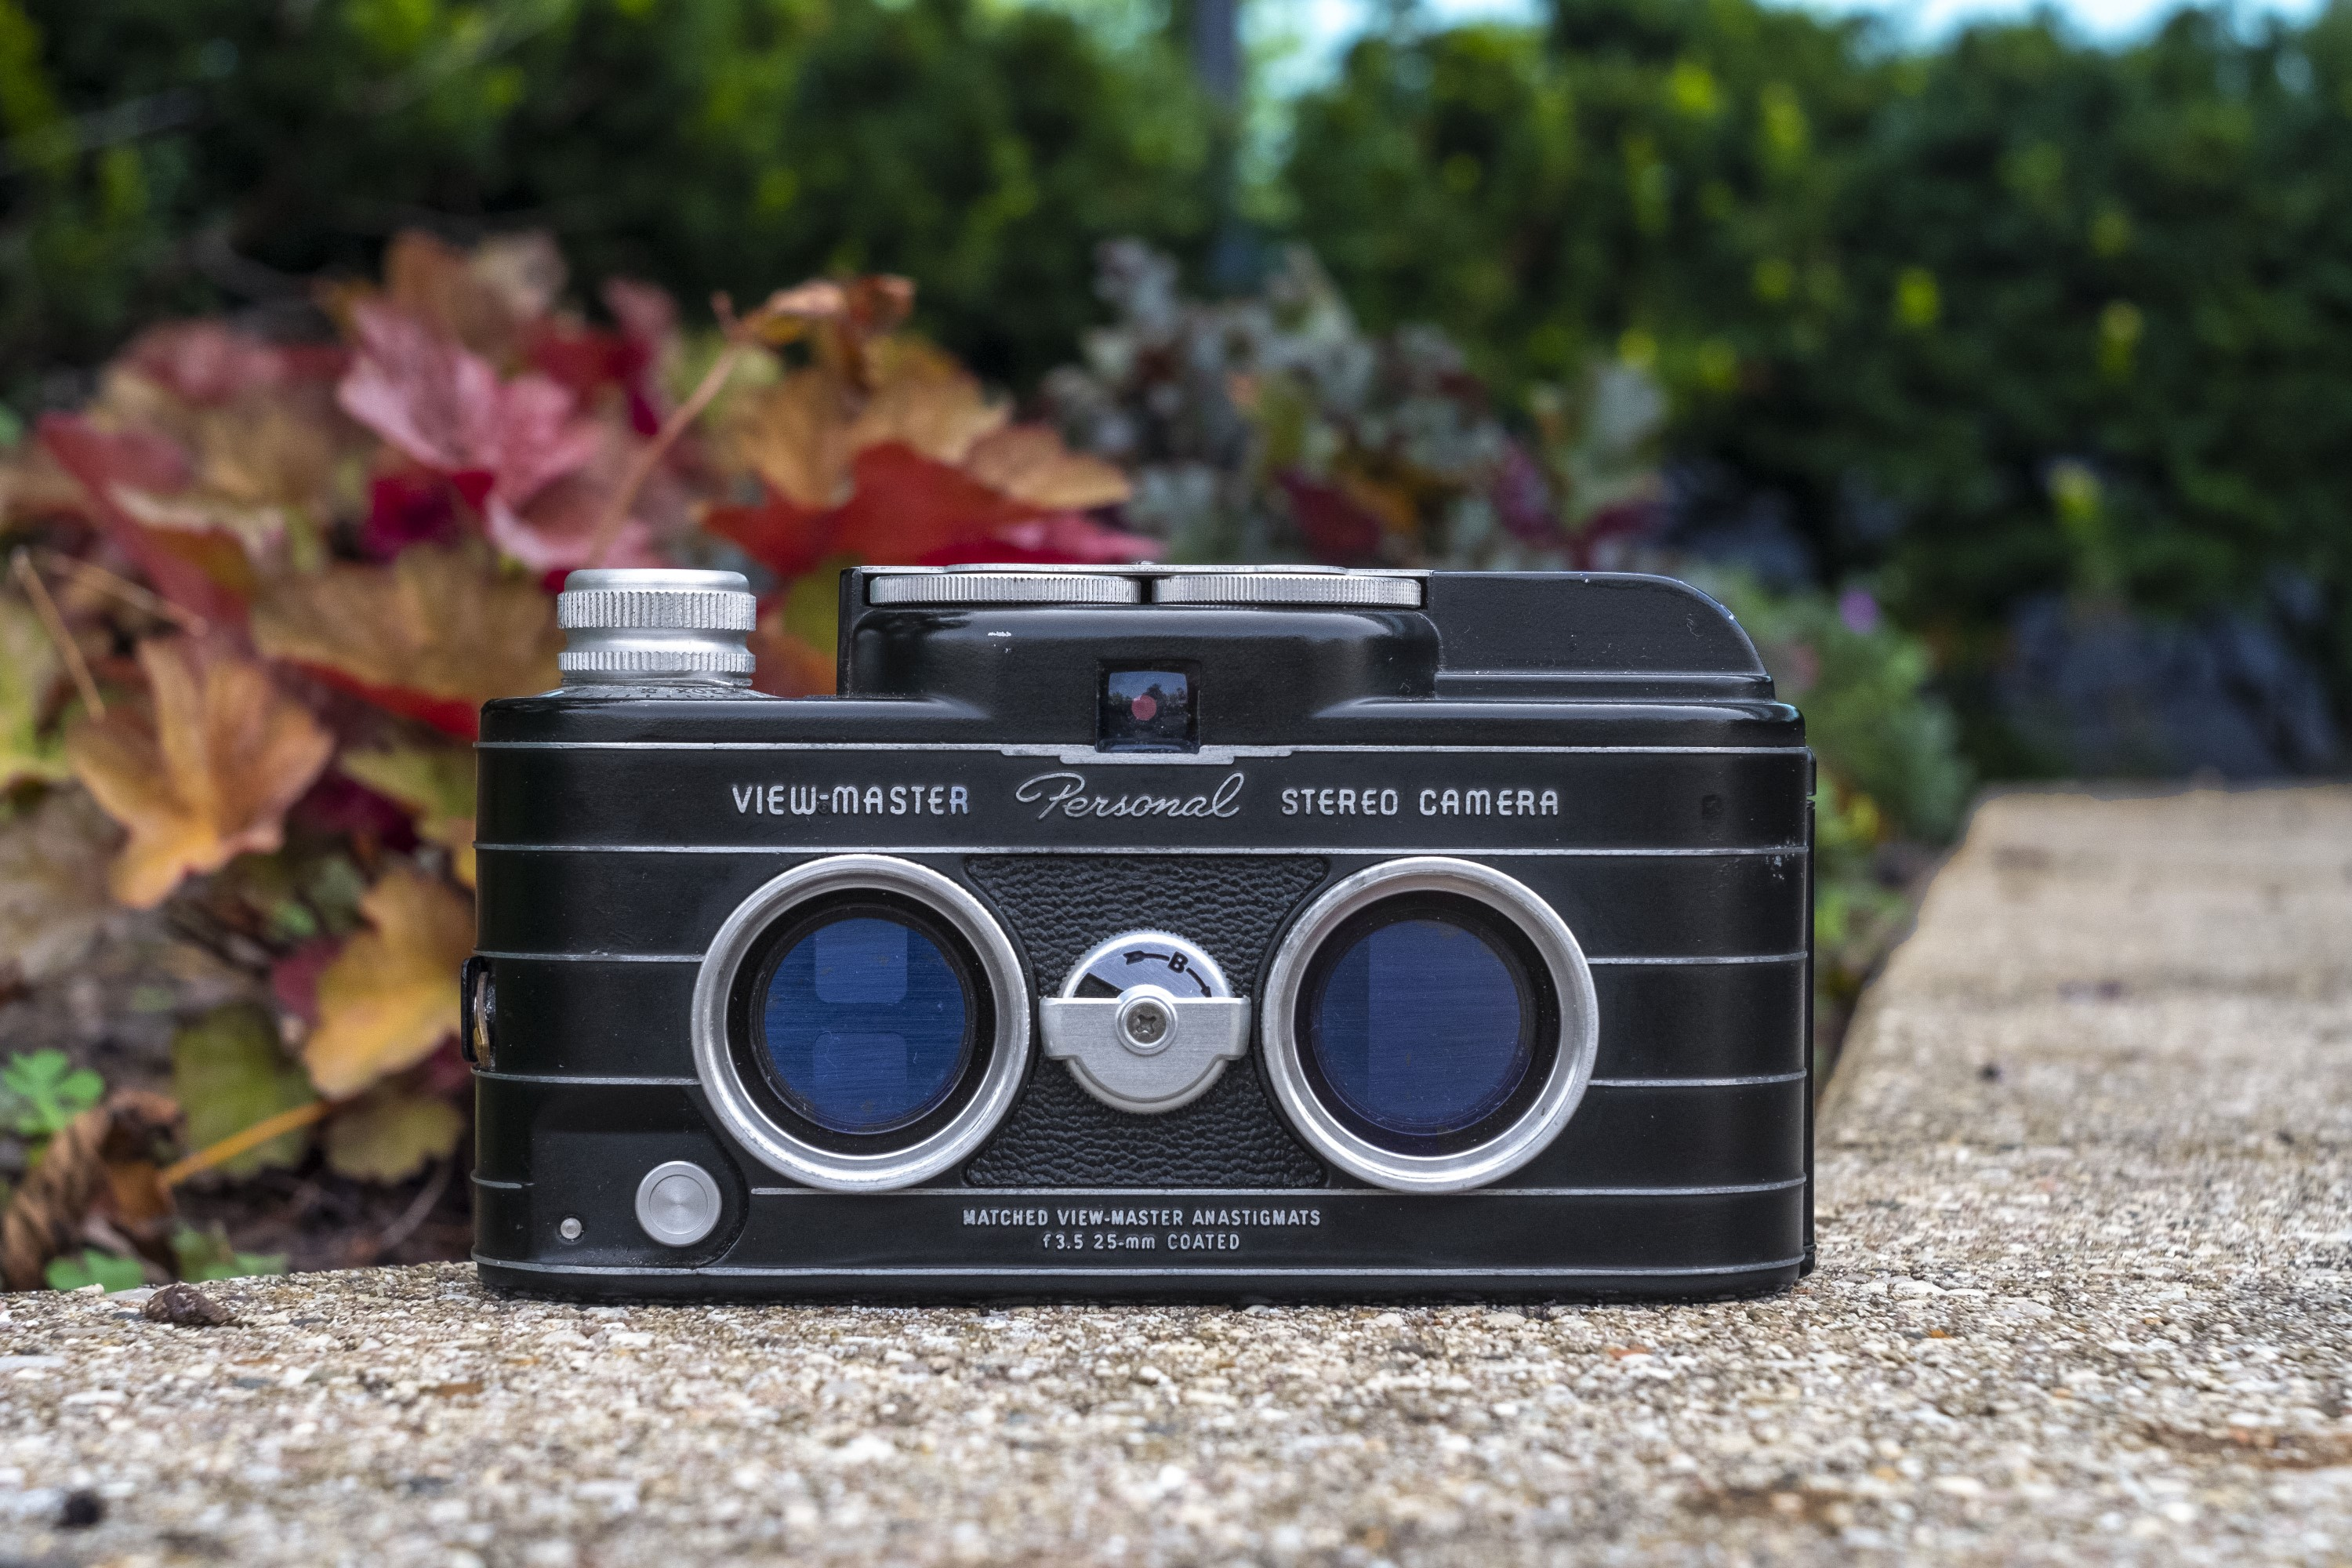 Sawyer's View-Master Personal Stereo Camera (1952)